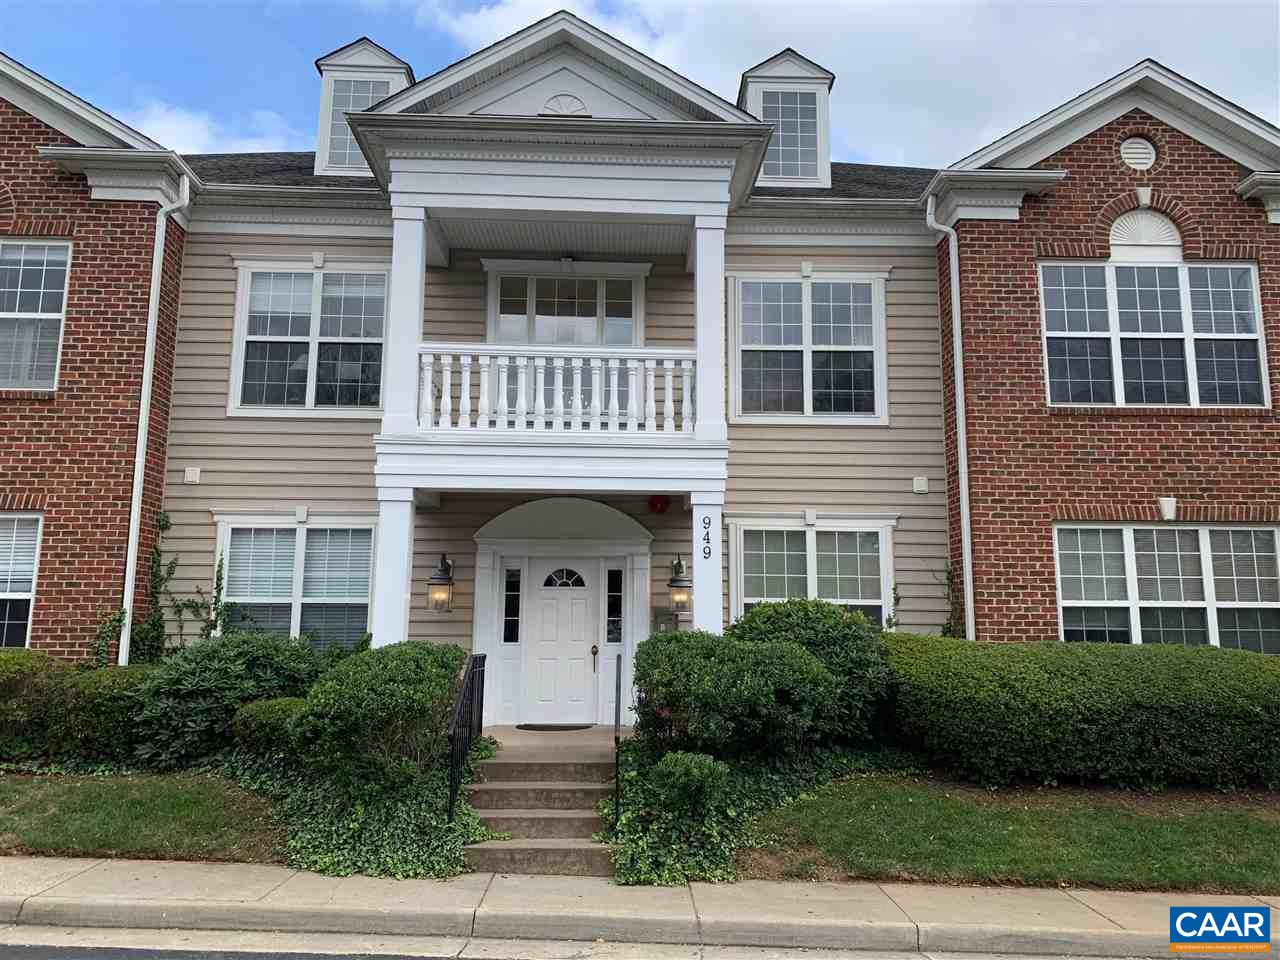 Beautifully Condo, with new paint throughout, granite counters, fireplace, hardwood floors , open floor plan. Great location, convenient to downtown, and 29.